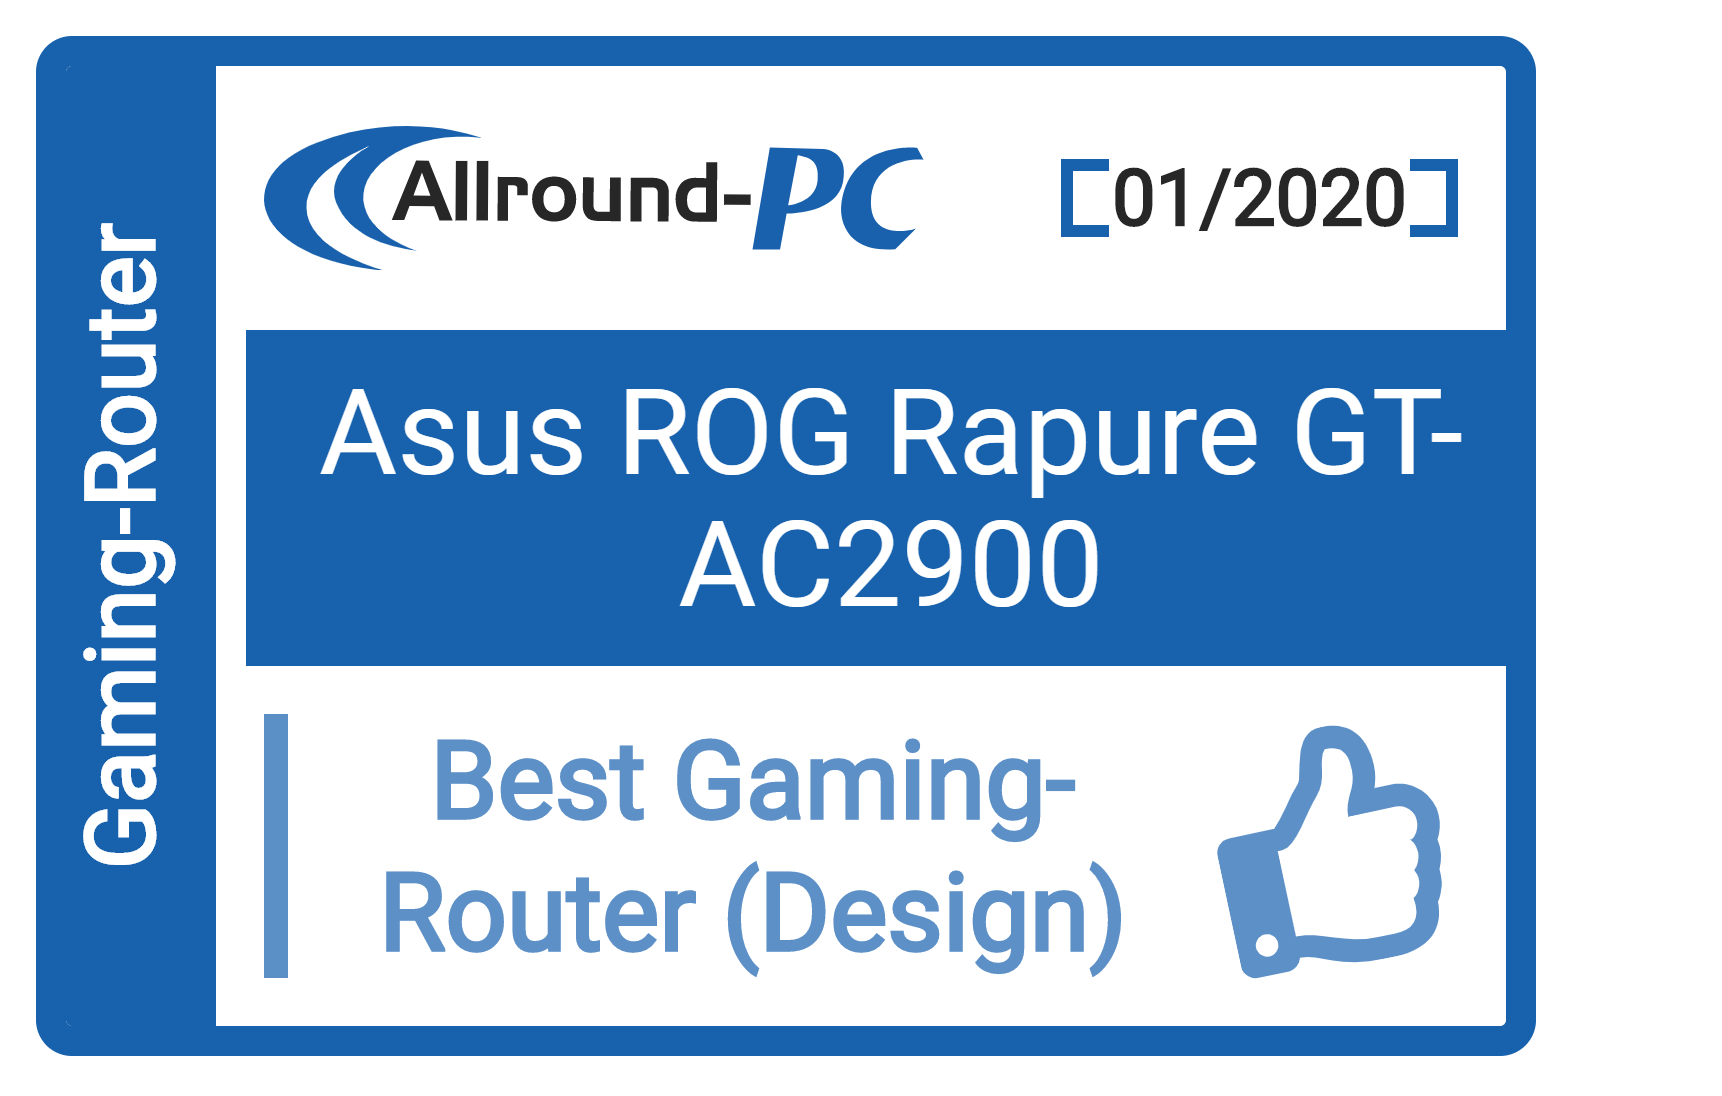 Best Gaming Router (Design)